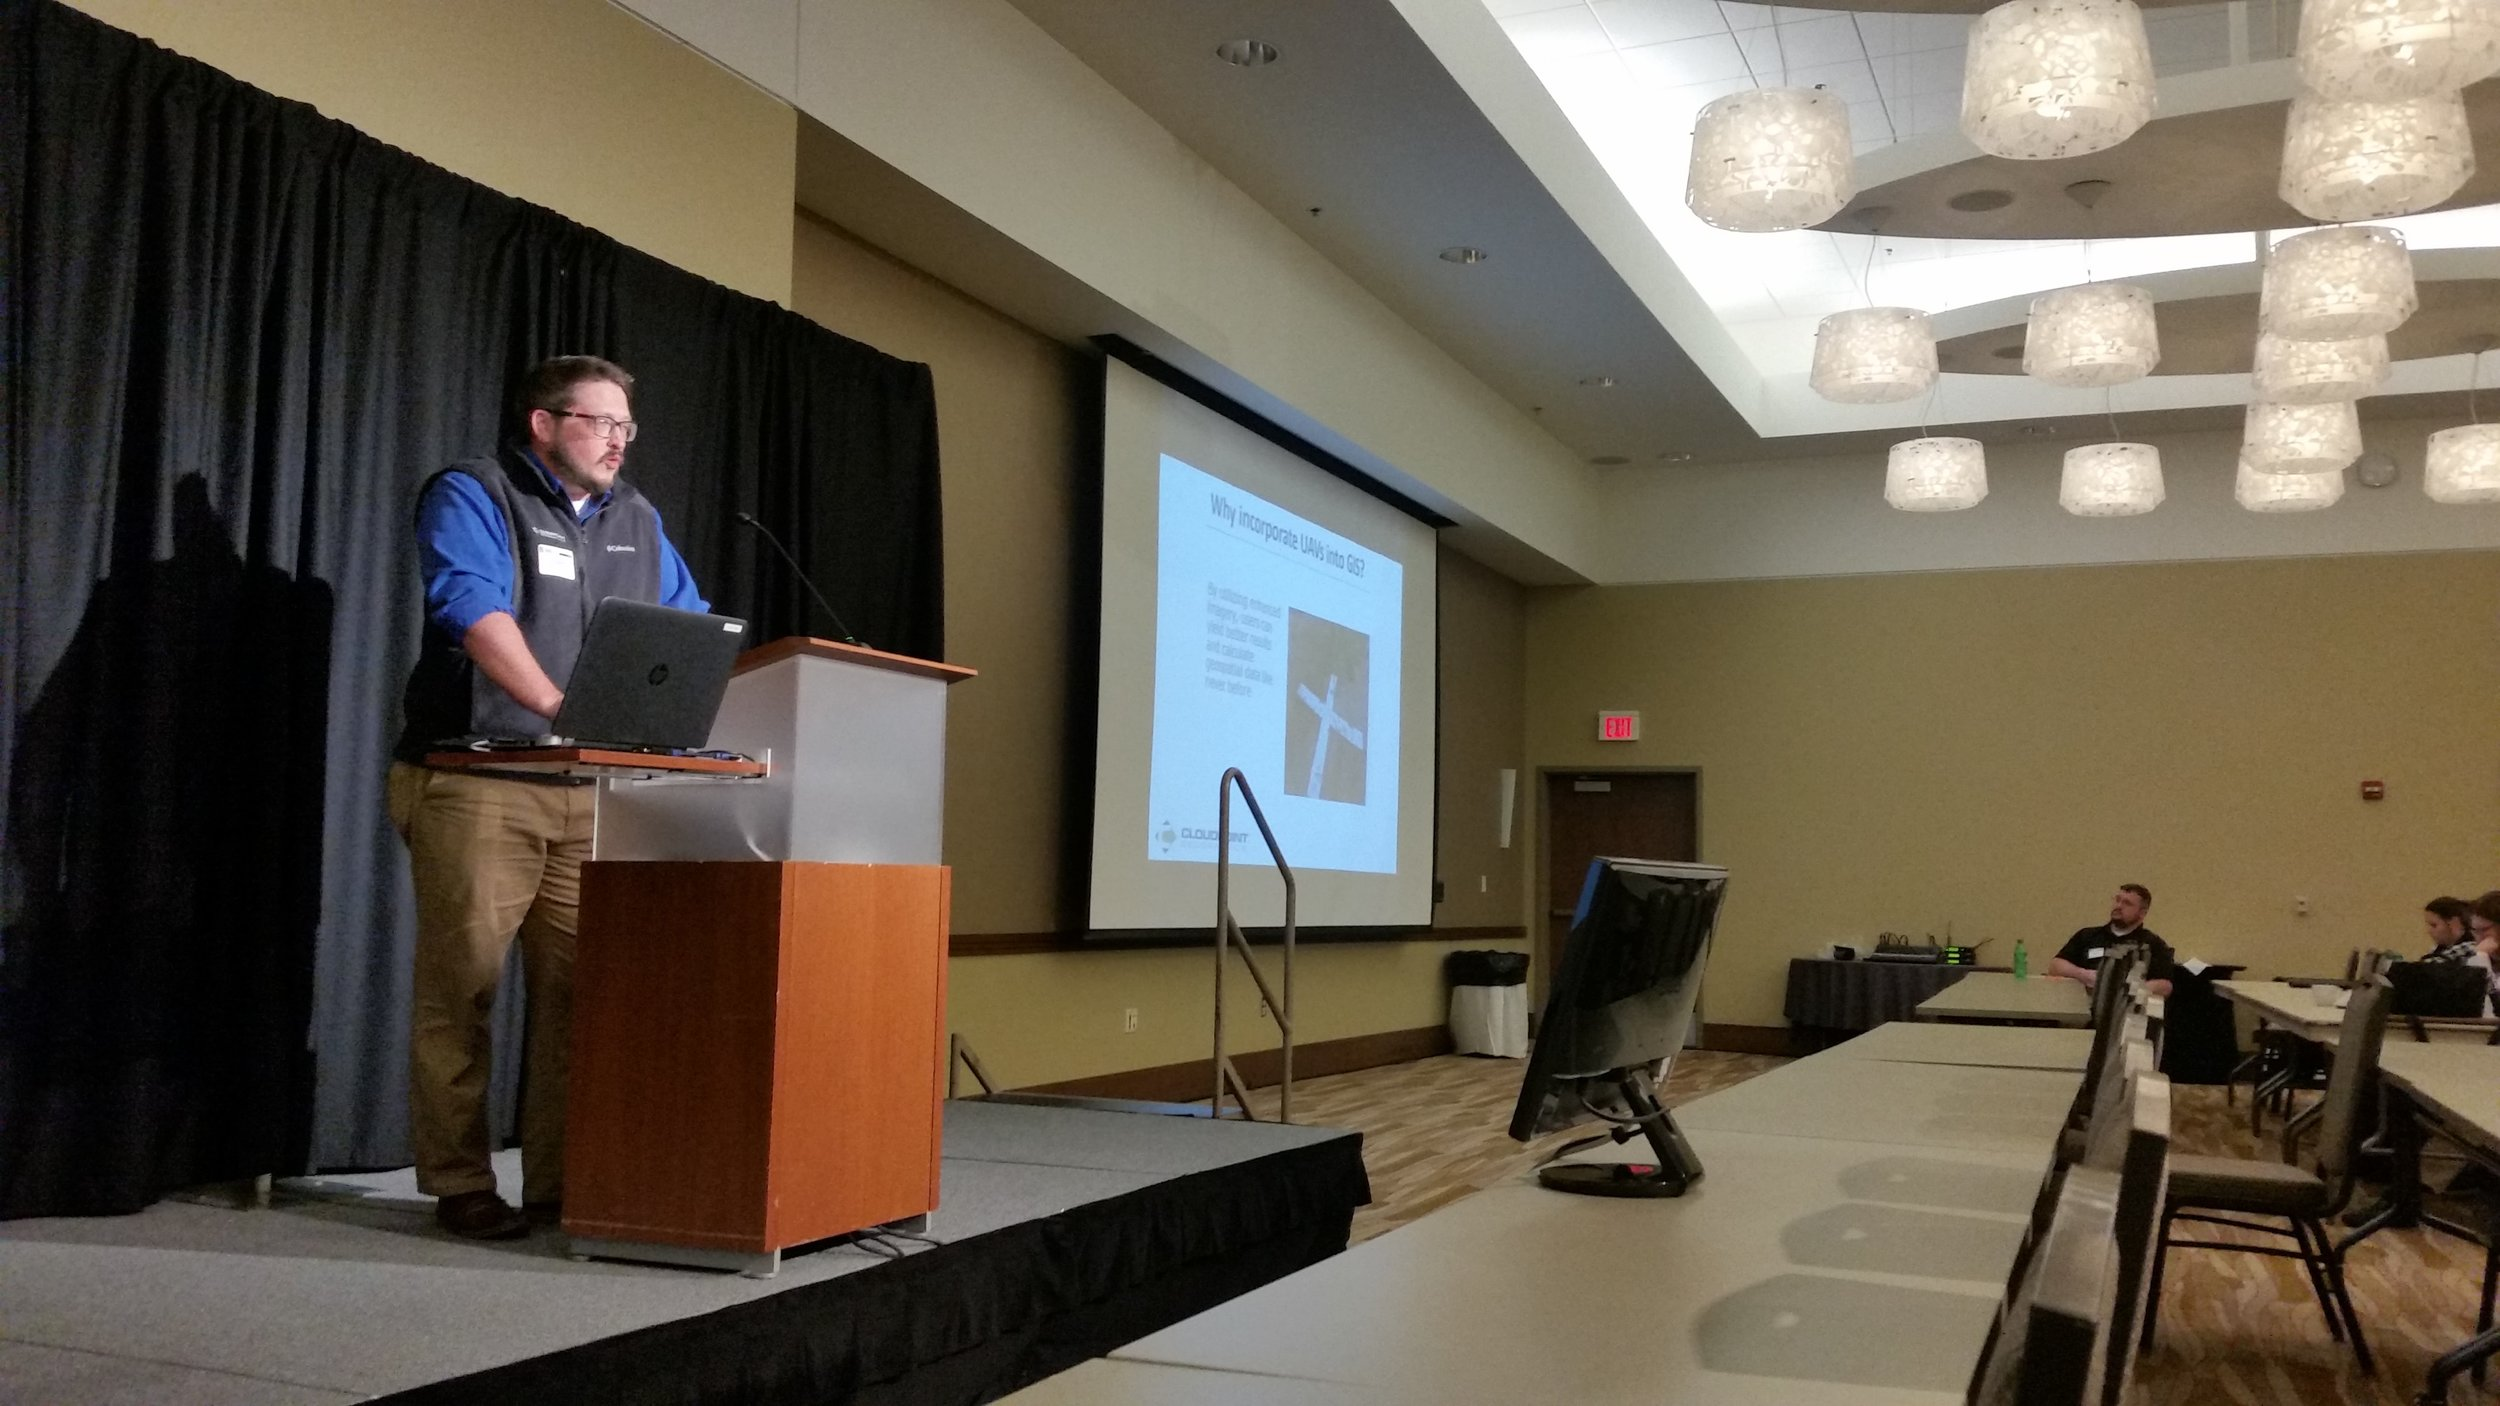 Joe Christian presents a Lightning Talk about UAV Mapping at the University of Illinois GIS Day.